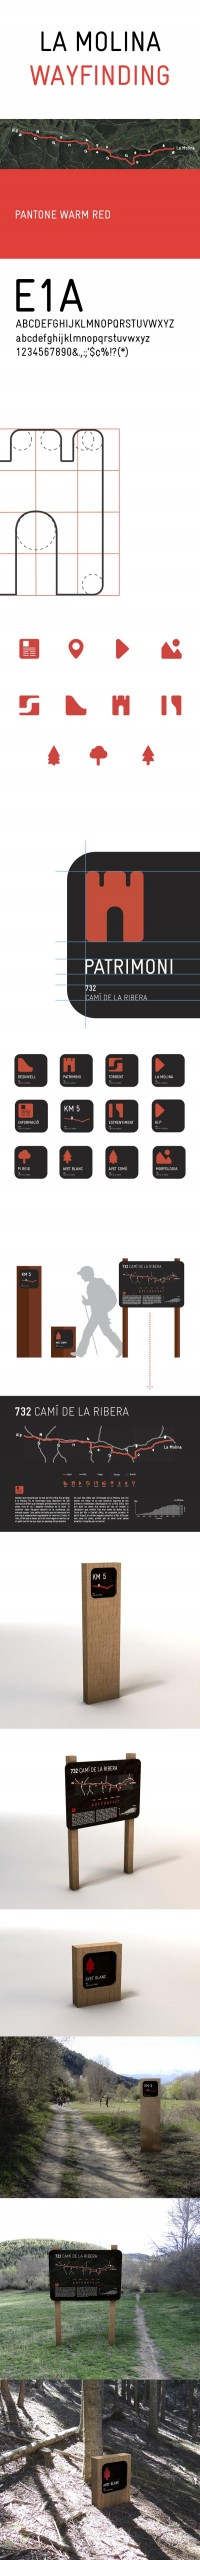 La Molina Wayfinding on